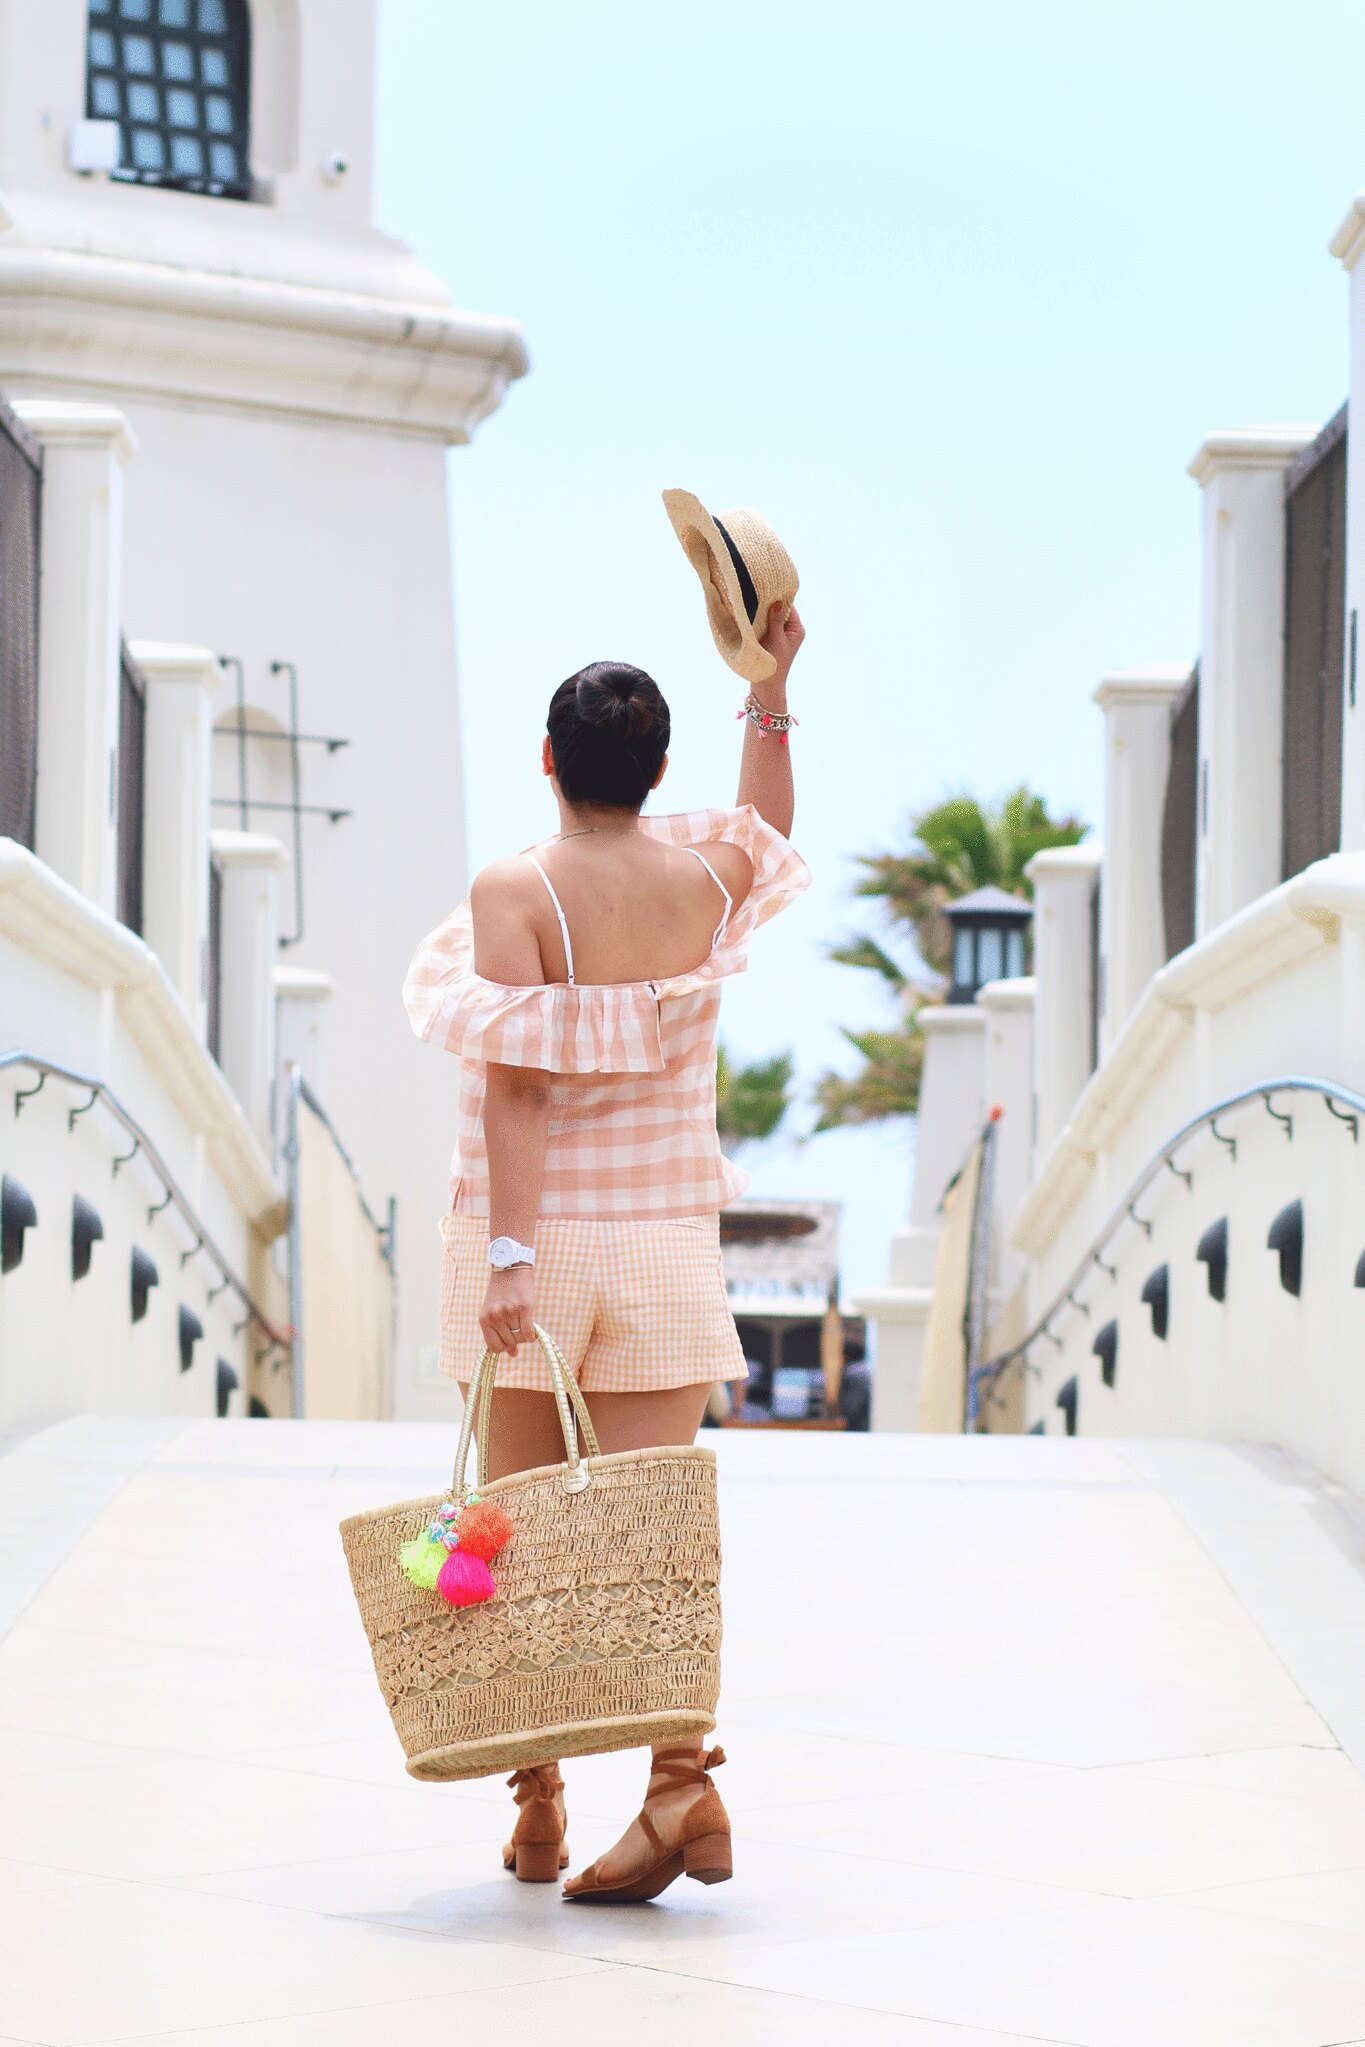 miriam gin, simplyxclassic, orange county blogger, fashion, club monaco outfit, checkered off the shoulder top, gingham shorts, preppy outfit, summer outfit, cute, lilly pulitzer straw tote, steve madden sandals,